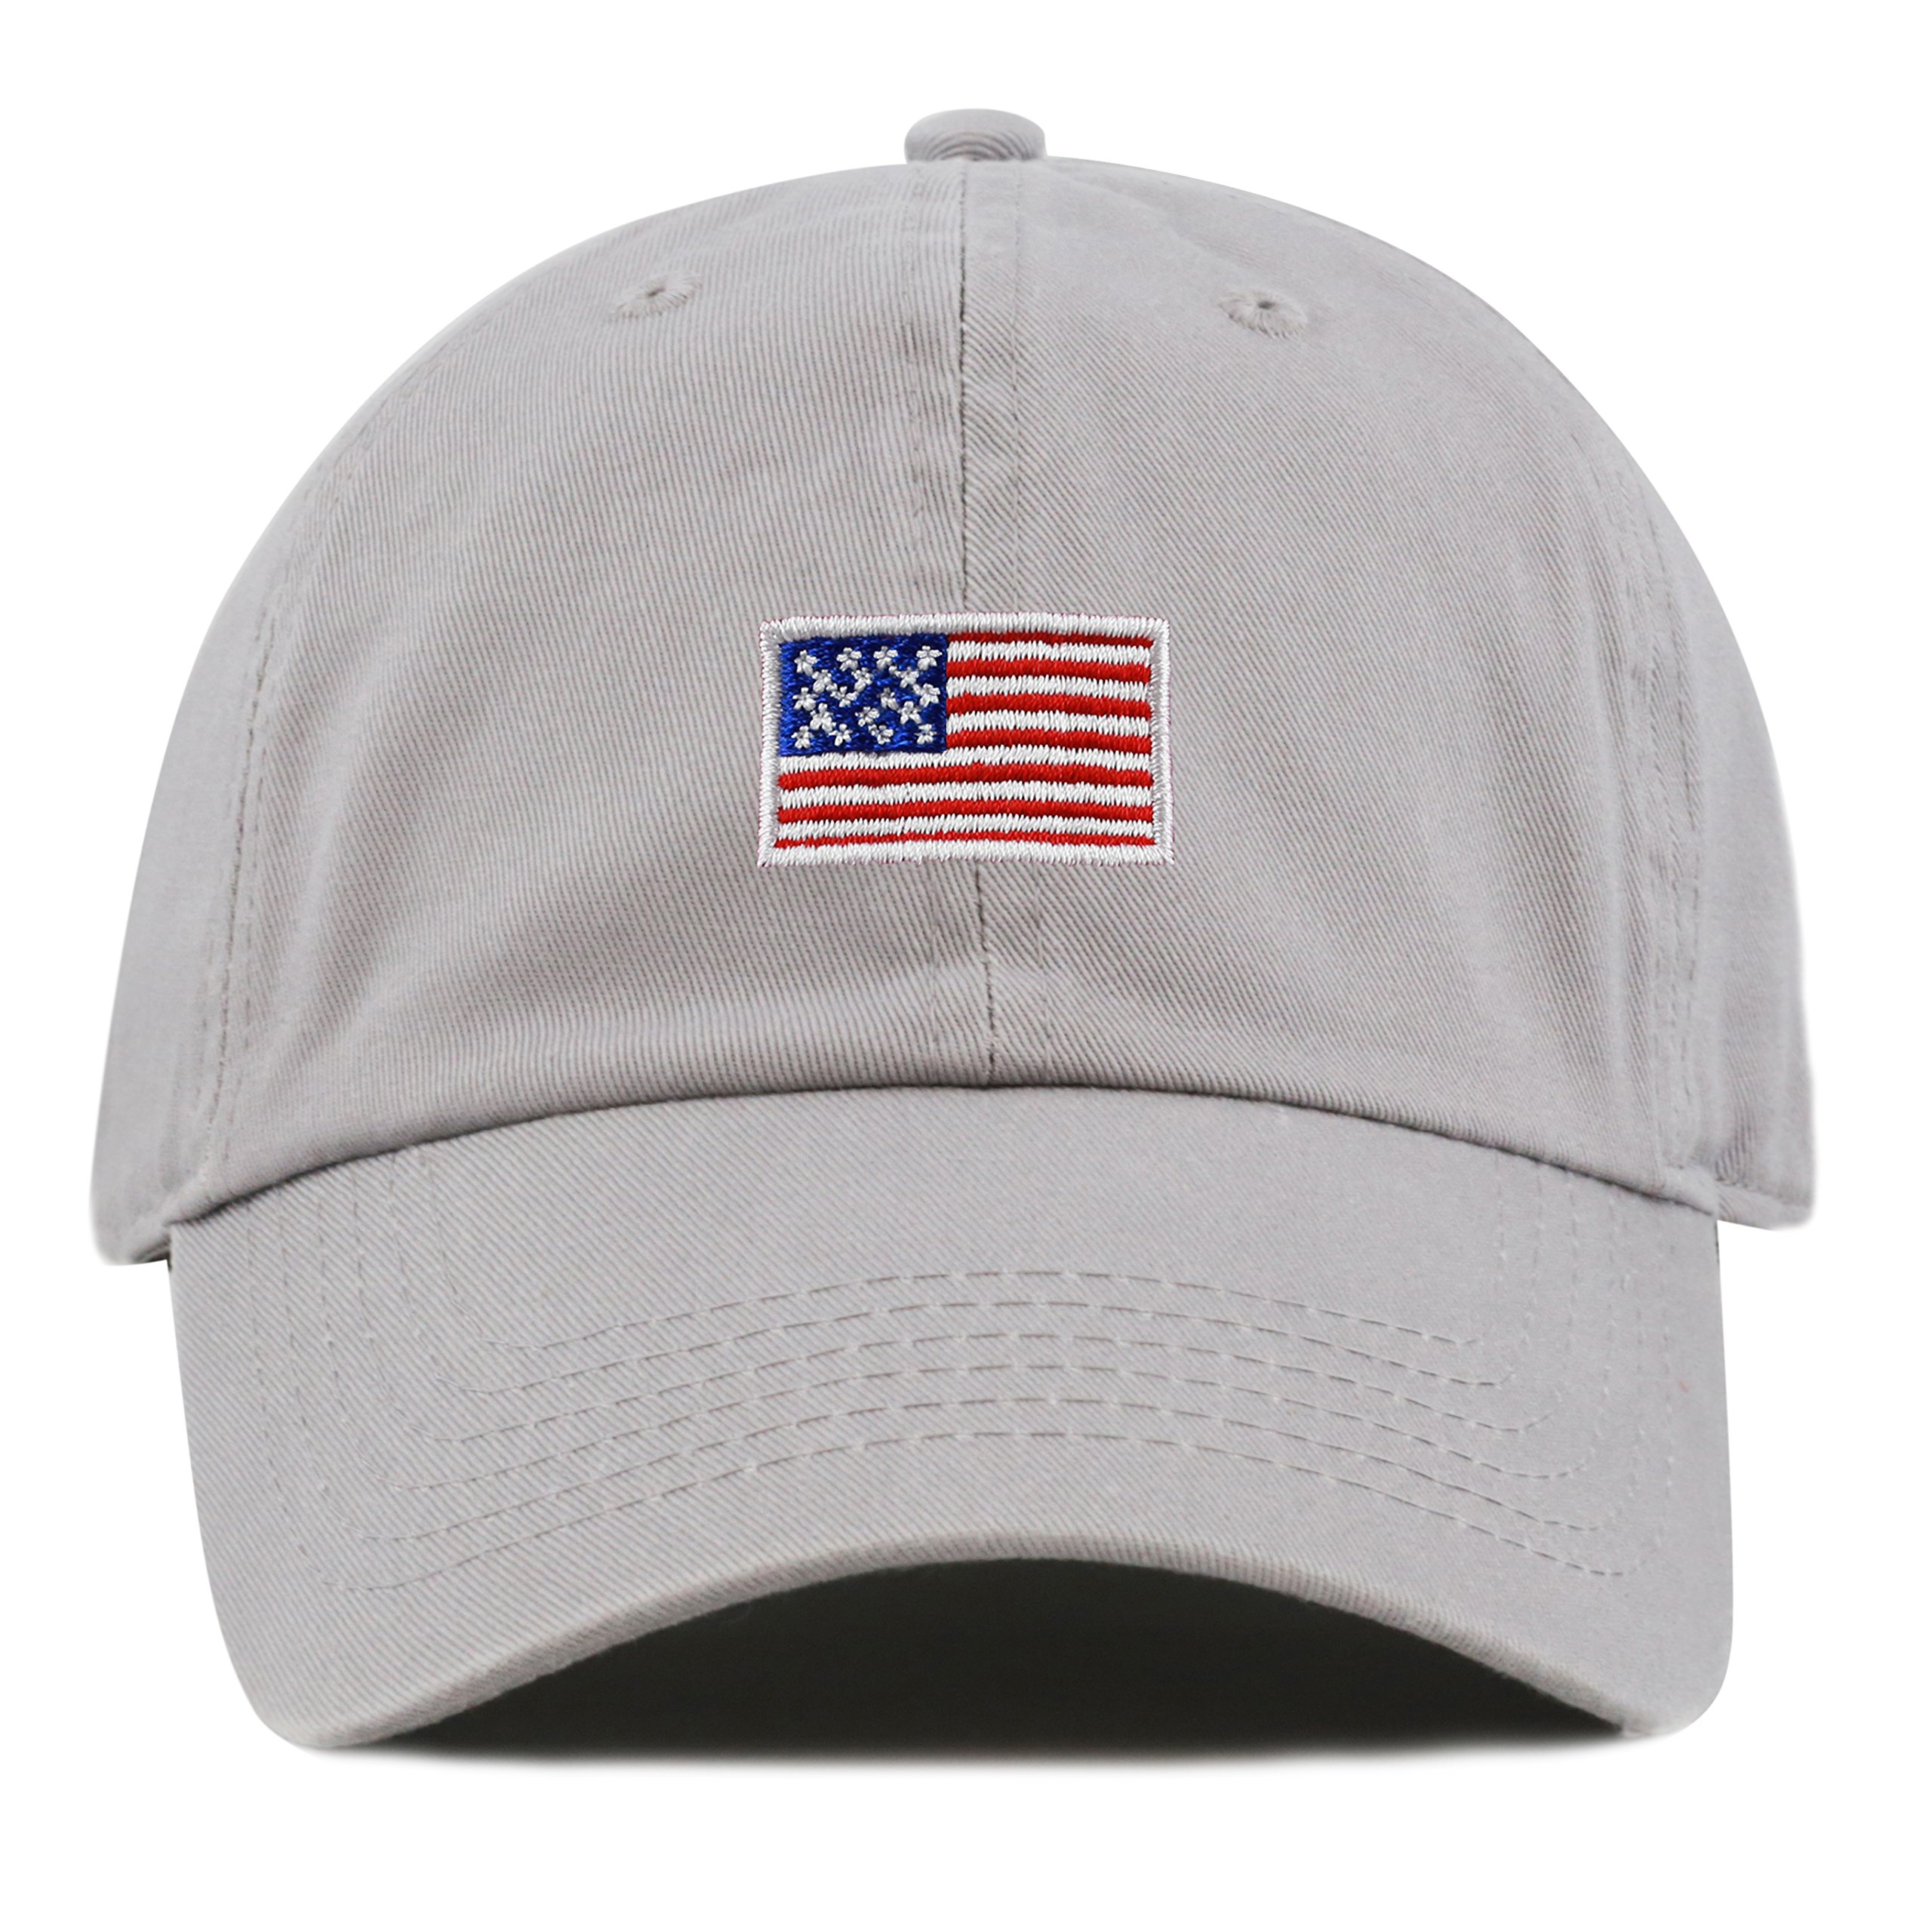 THE HAT DEPOT Kids American Flag Washed Low Profile Cotton Baseball Hat Cap (2-5yrs, Grey)